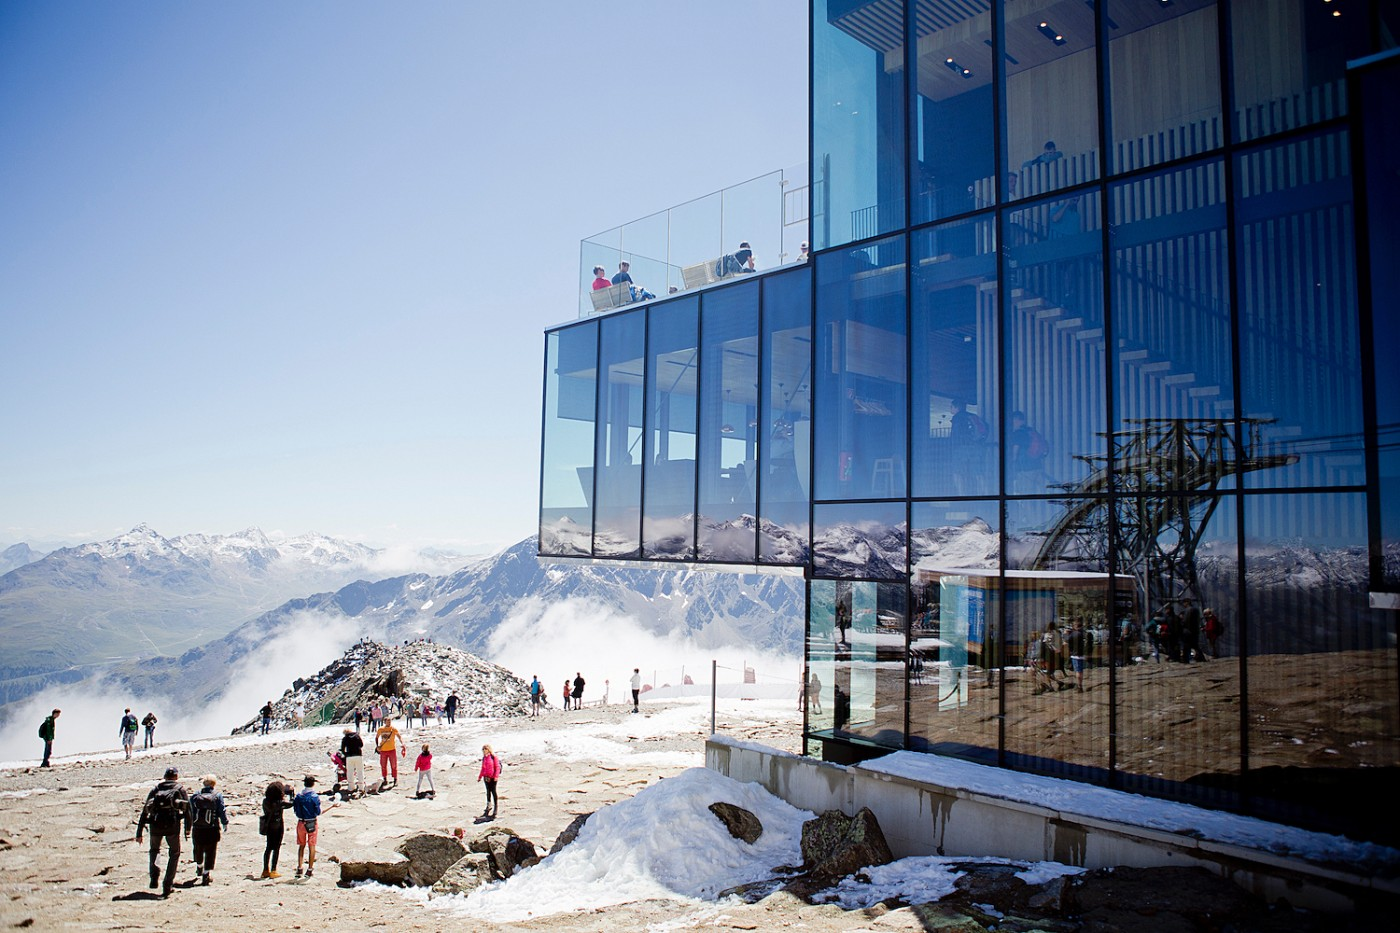 On James Bond's trails and a gourmet lunch at ice Q